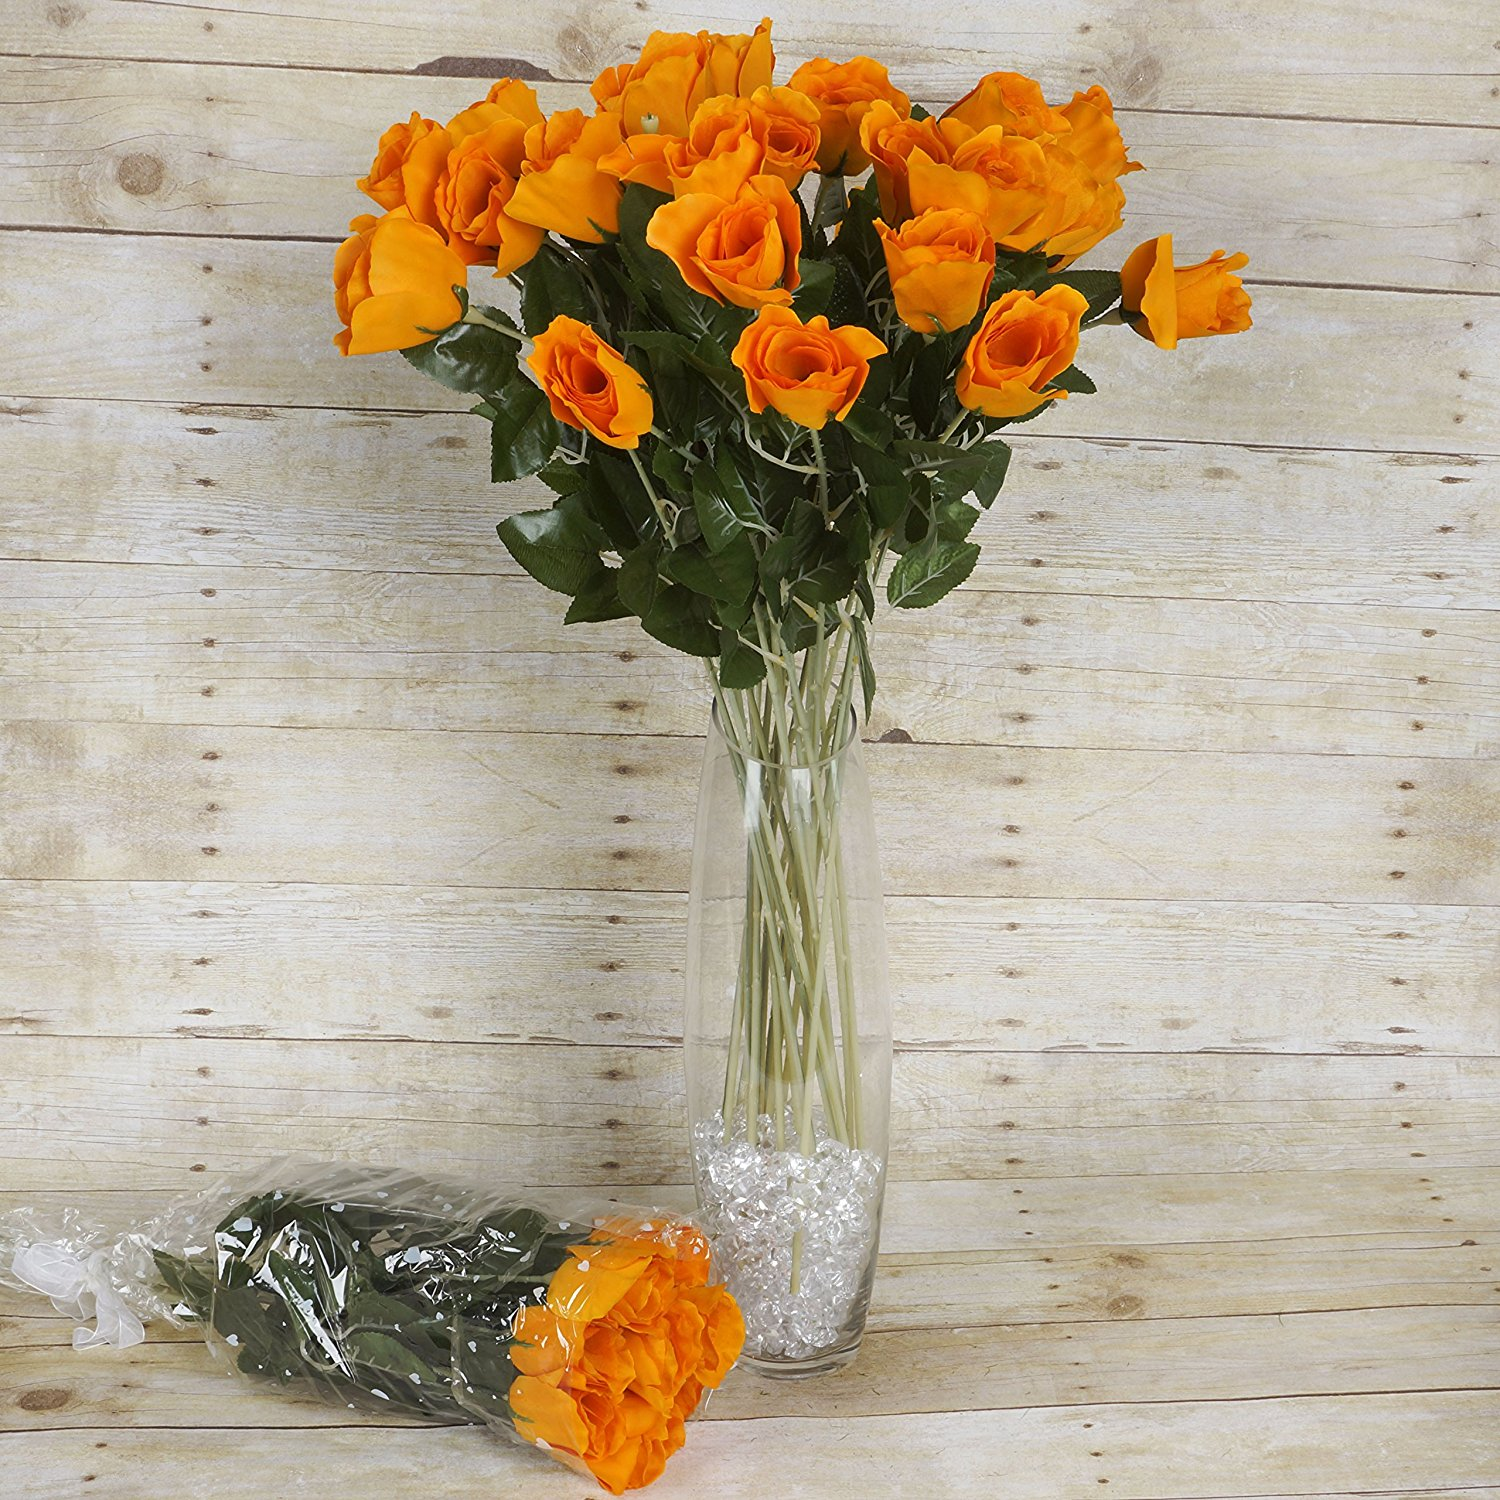 Cheap Flowers Single Rose Find Flowers Single Rose Deals On Line At